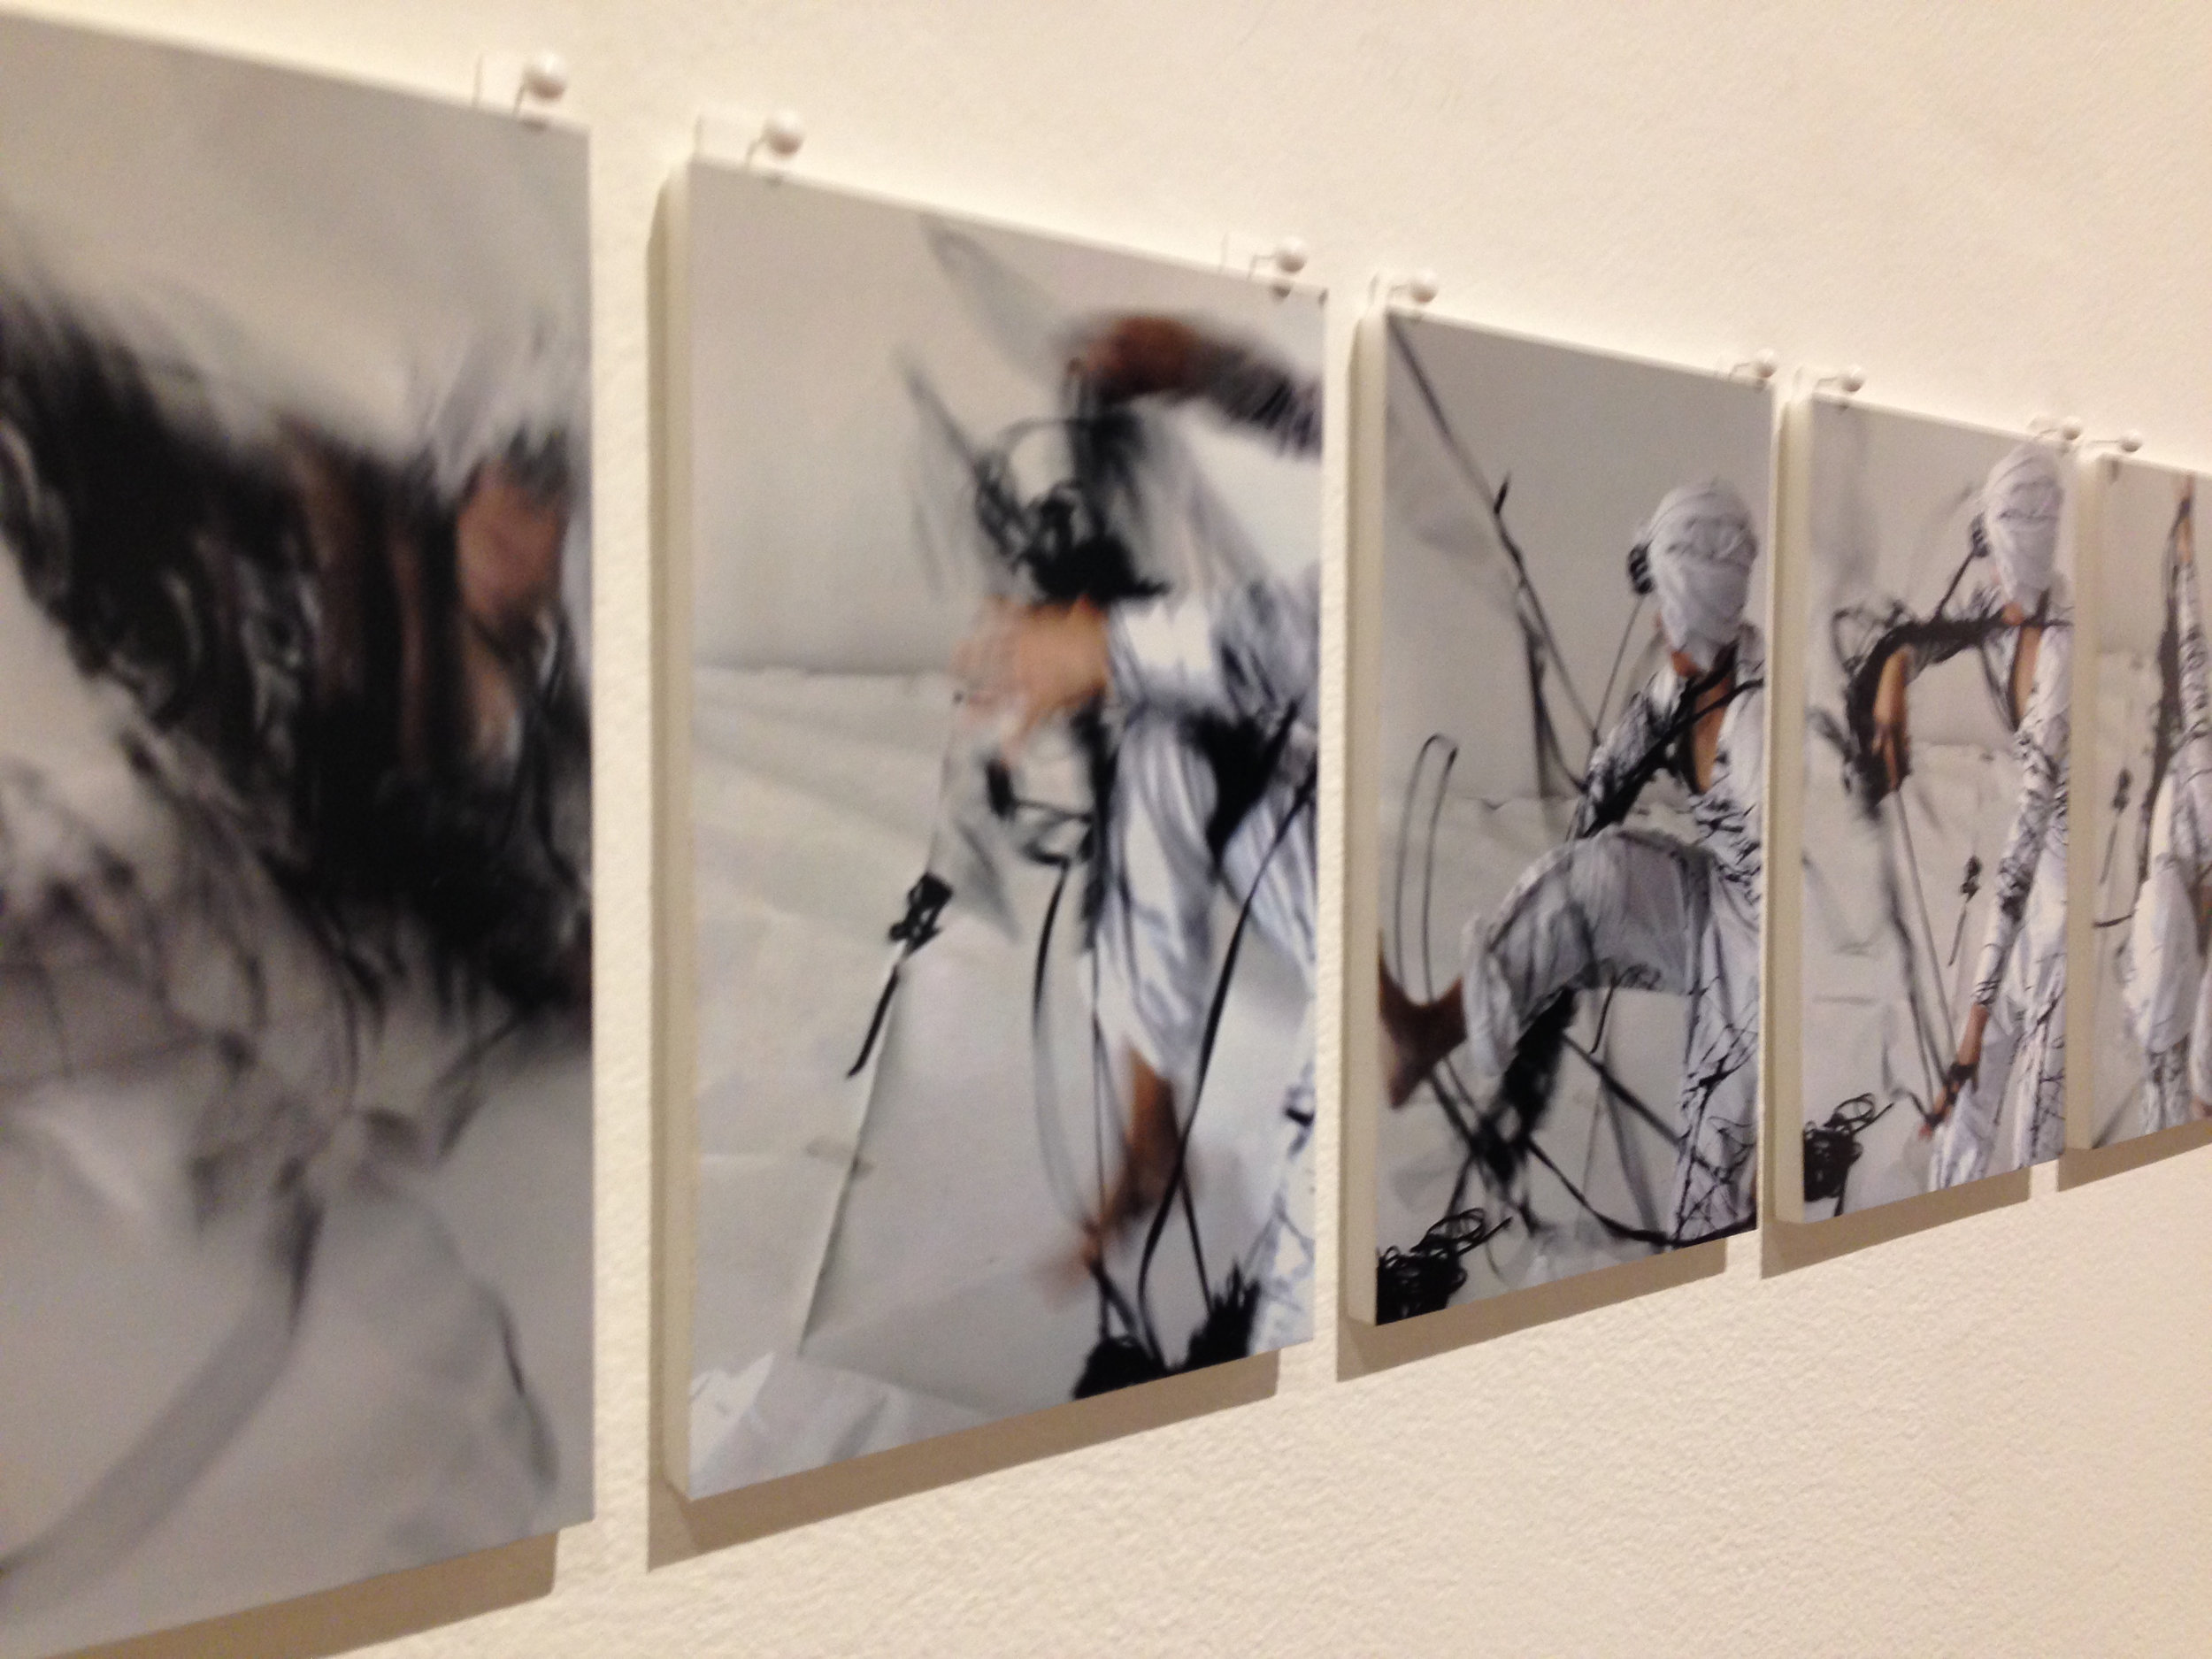 Nicci Haynes,  Etching performance at Mount Stromlo (installation view) 2013, Filmed by Lomokino (hand-cranked camera) on 35mm slide film digitsed and housed in and wooden shadow box 24 cm 30 cm x 8cm (From the series  Body language ).